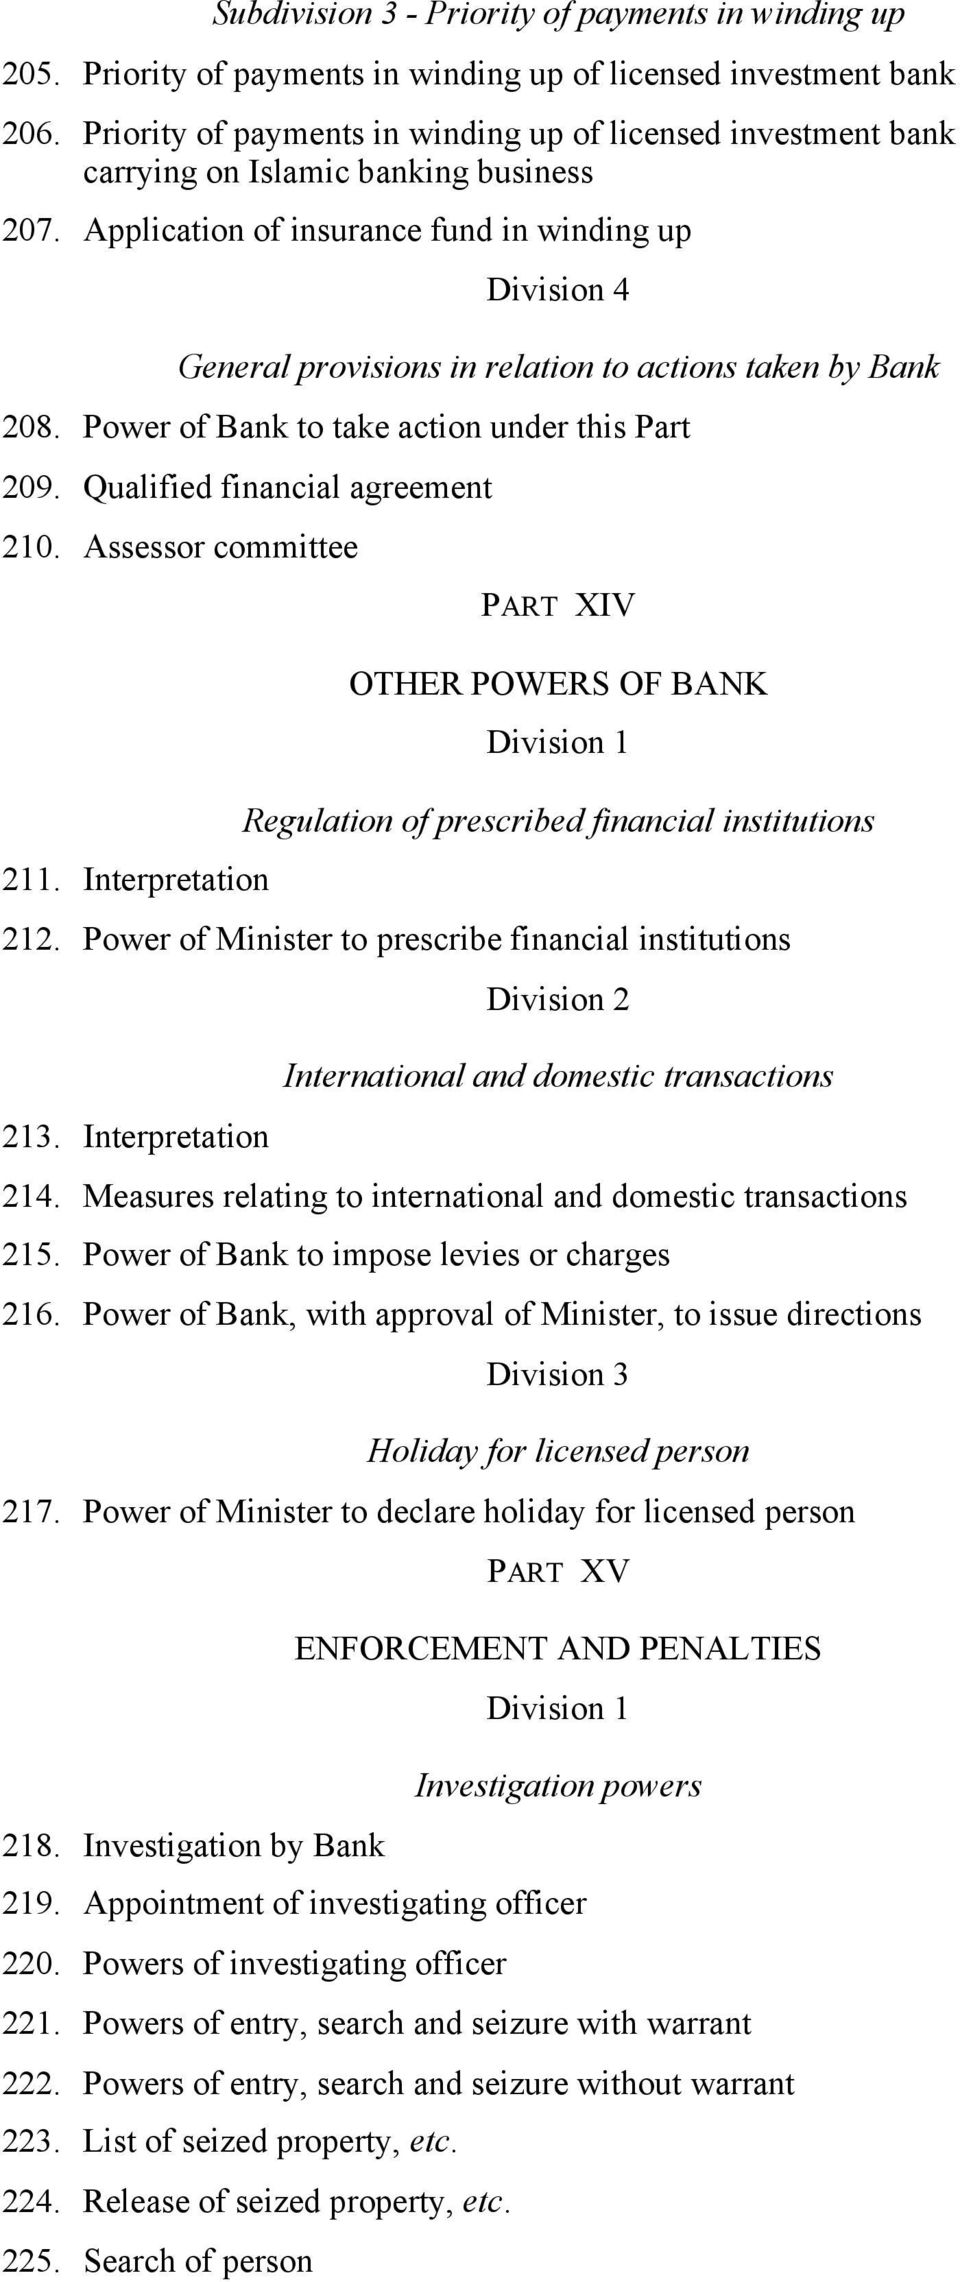 Application of insurance fund in winding up Division 4 General provisions in relation to actions taken by Bank 208. Power of Bank to take action under this Part 209. Qualified financial agreement 210.